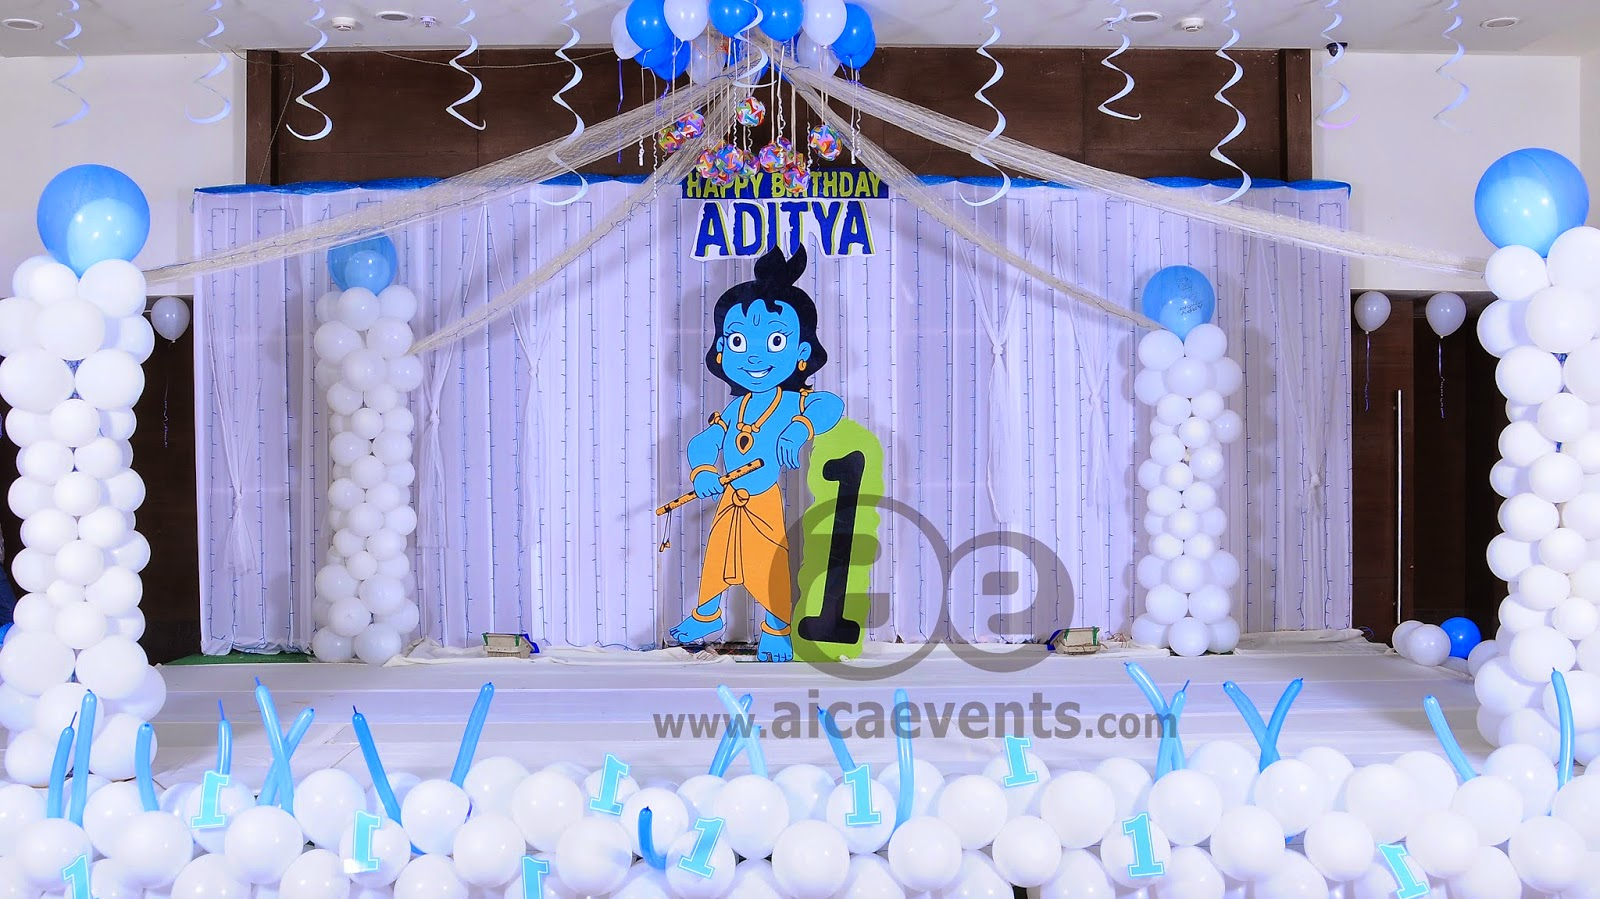 Aicaevents india krishna theme birthday party decorations for Backdrop decoration for birthday